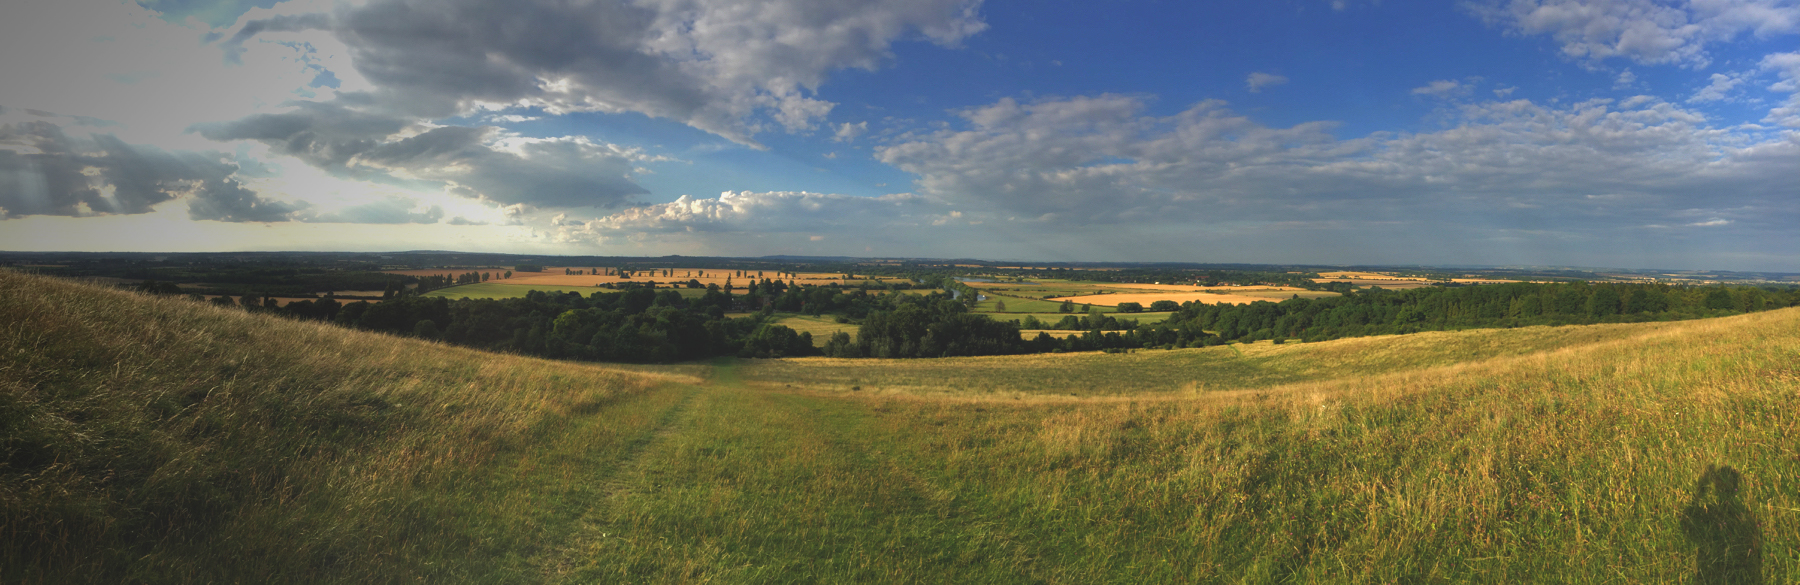 My shadow bottom right. View from Wittenham Clumps by the Thames at Dorchester.